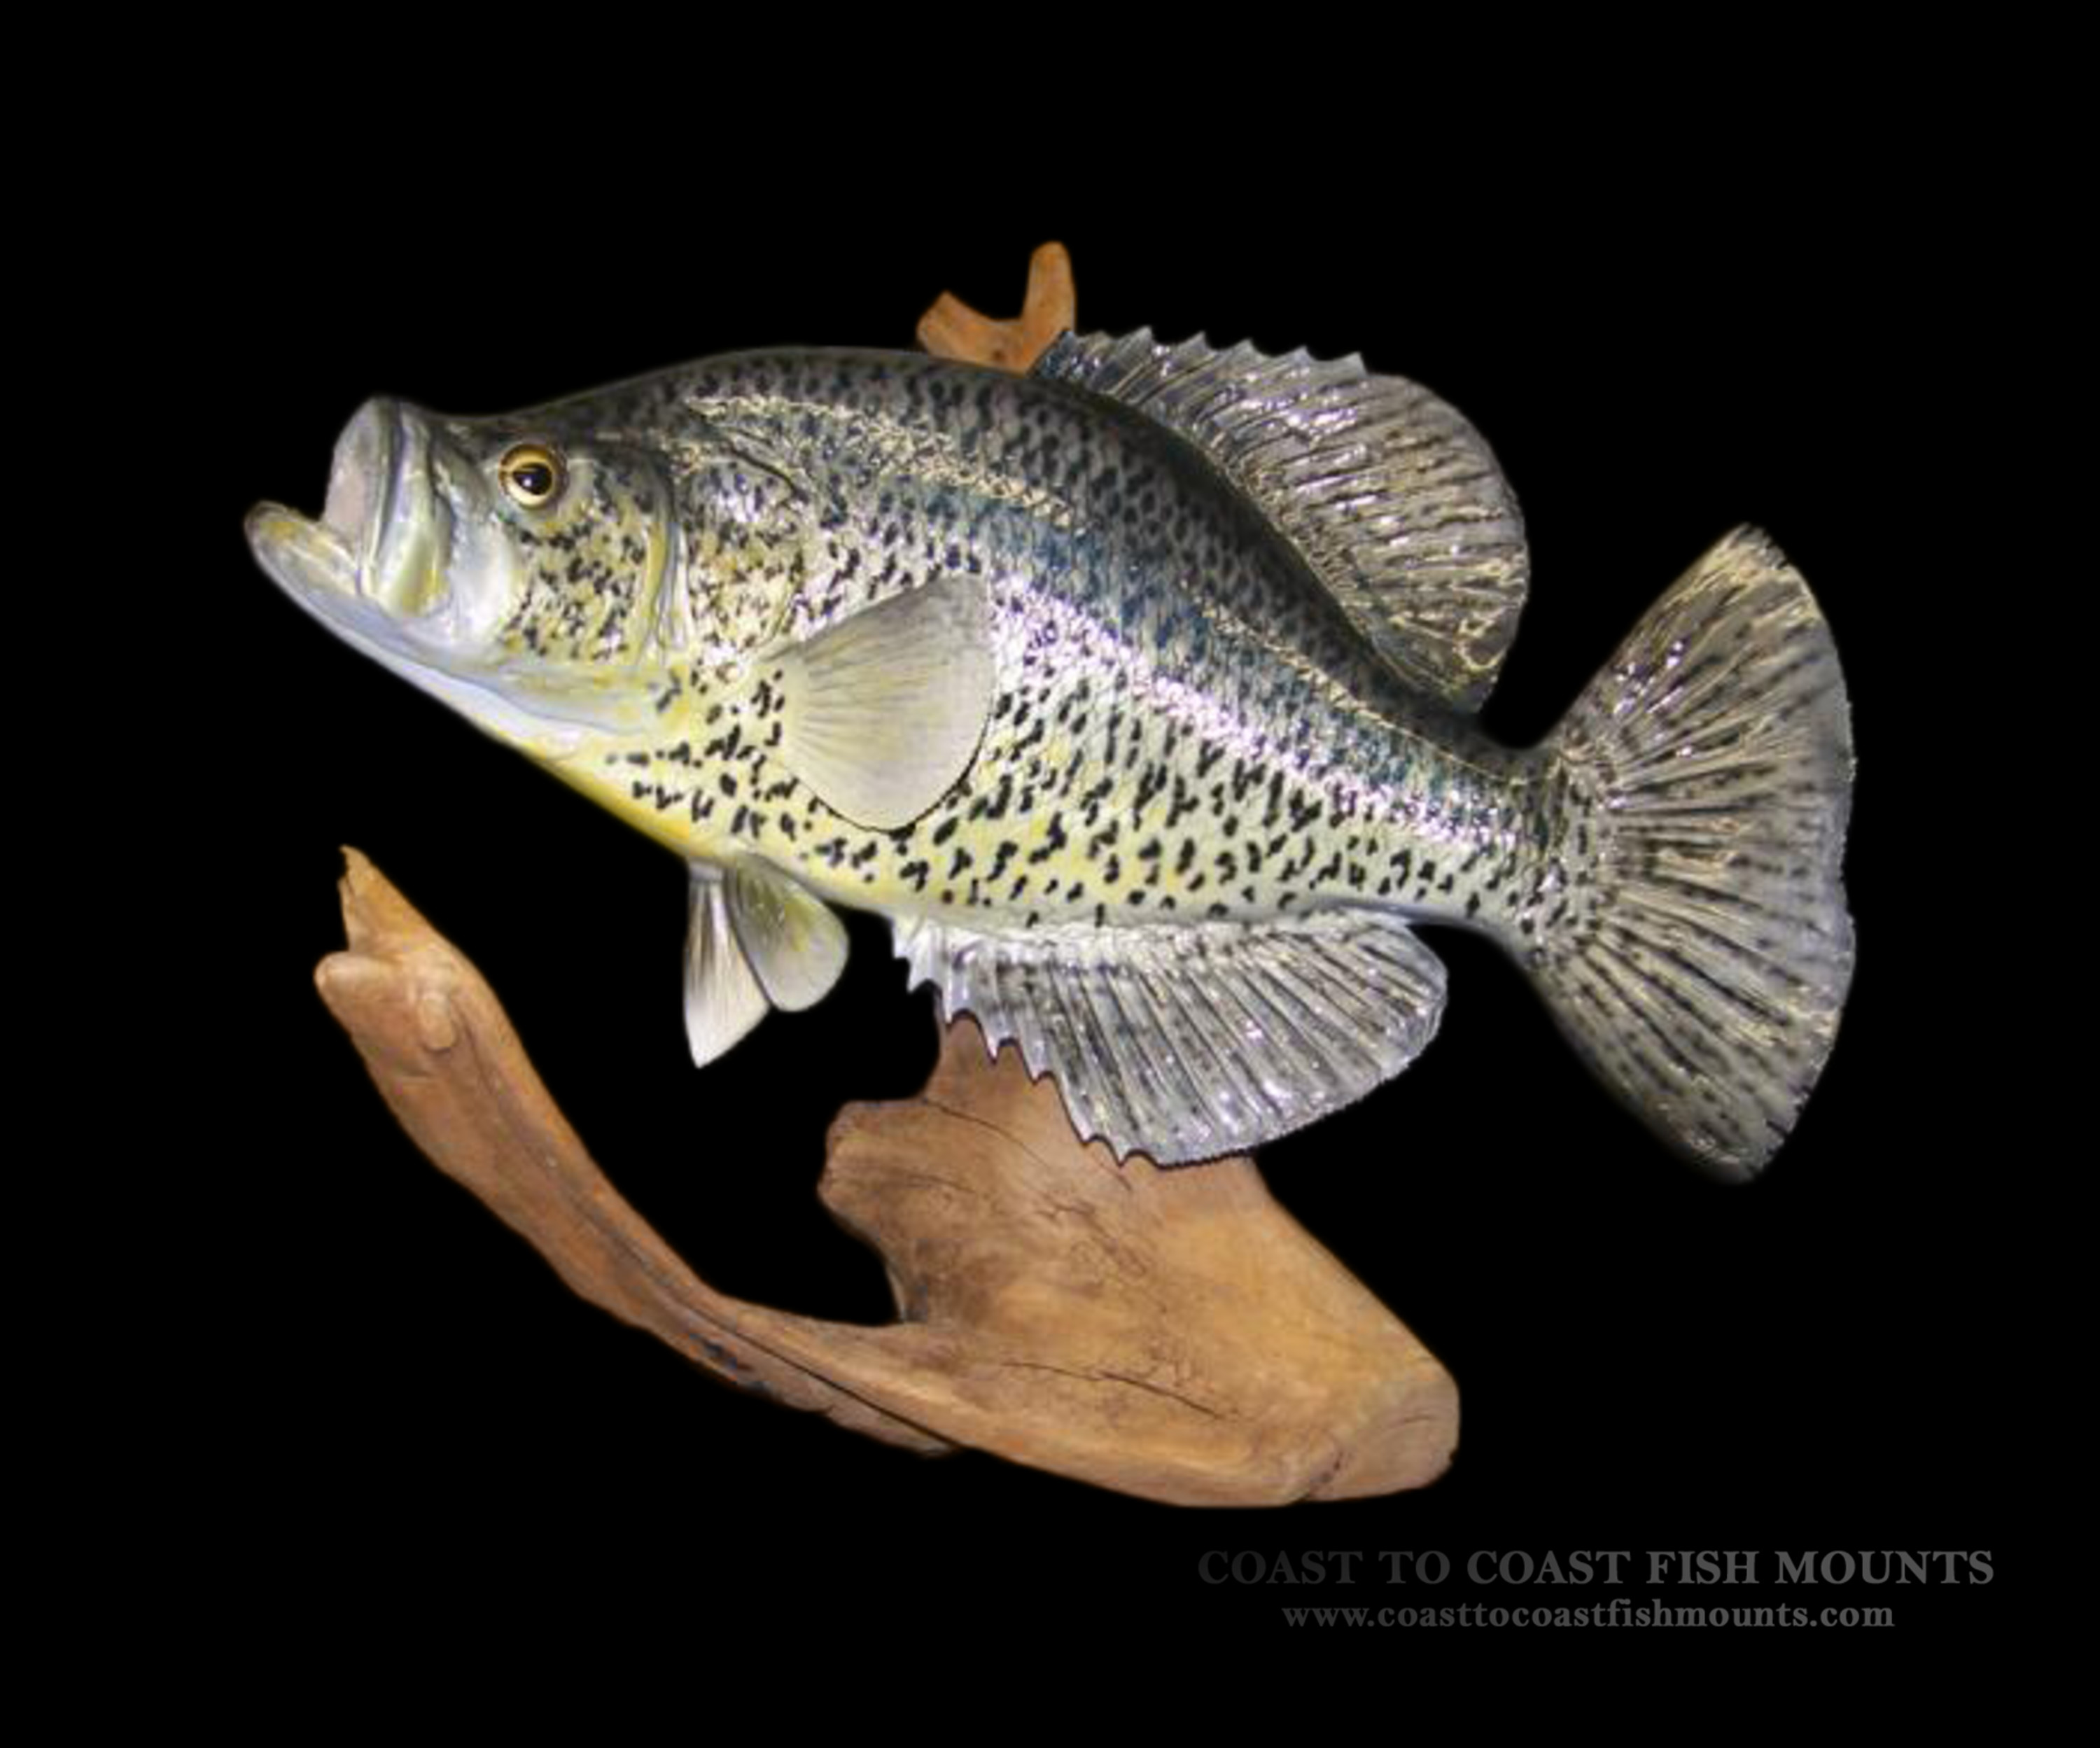 calico bass crappie fish mount and fish replicas coast